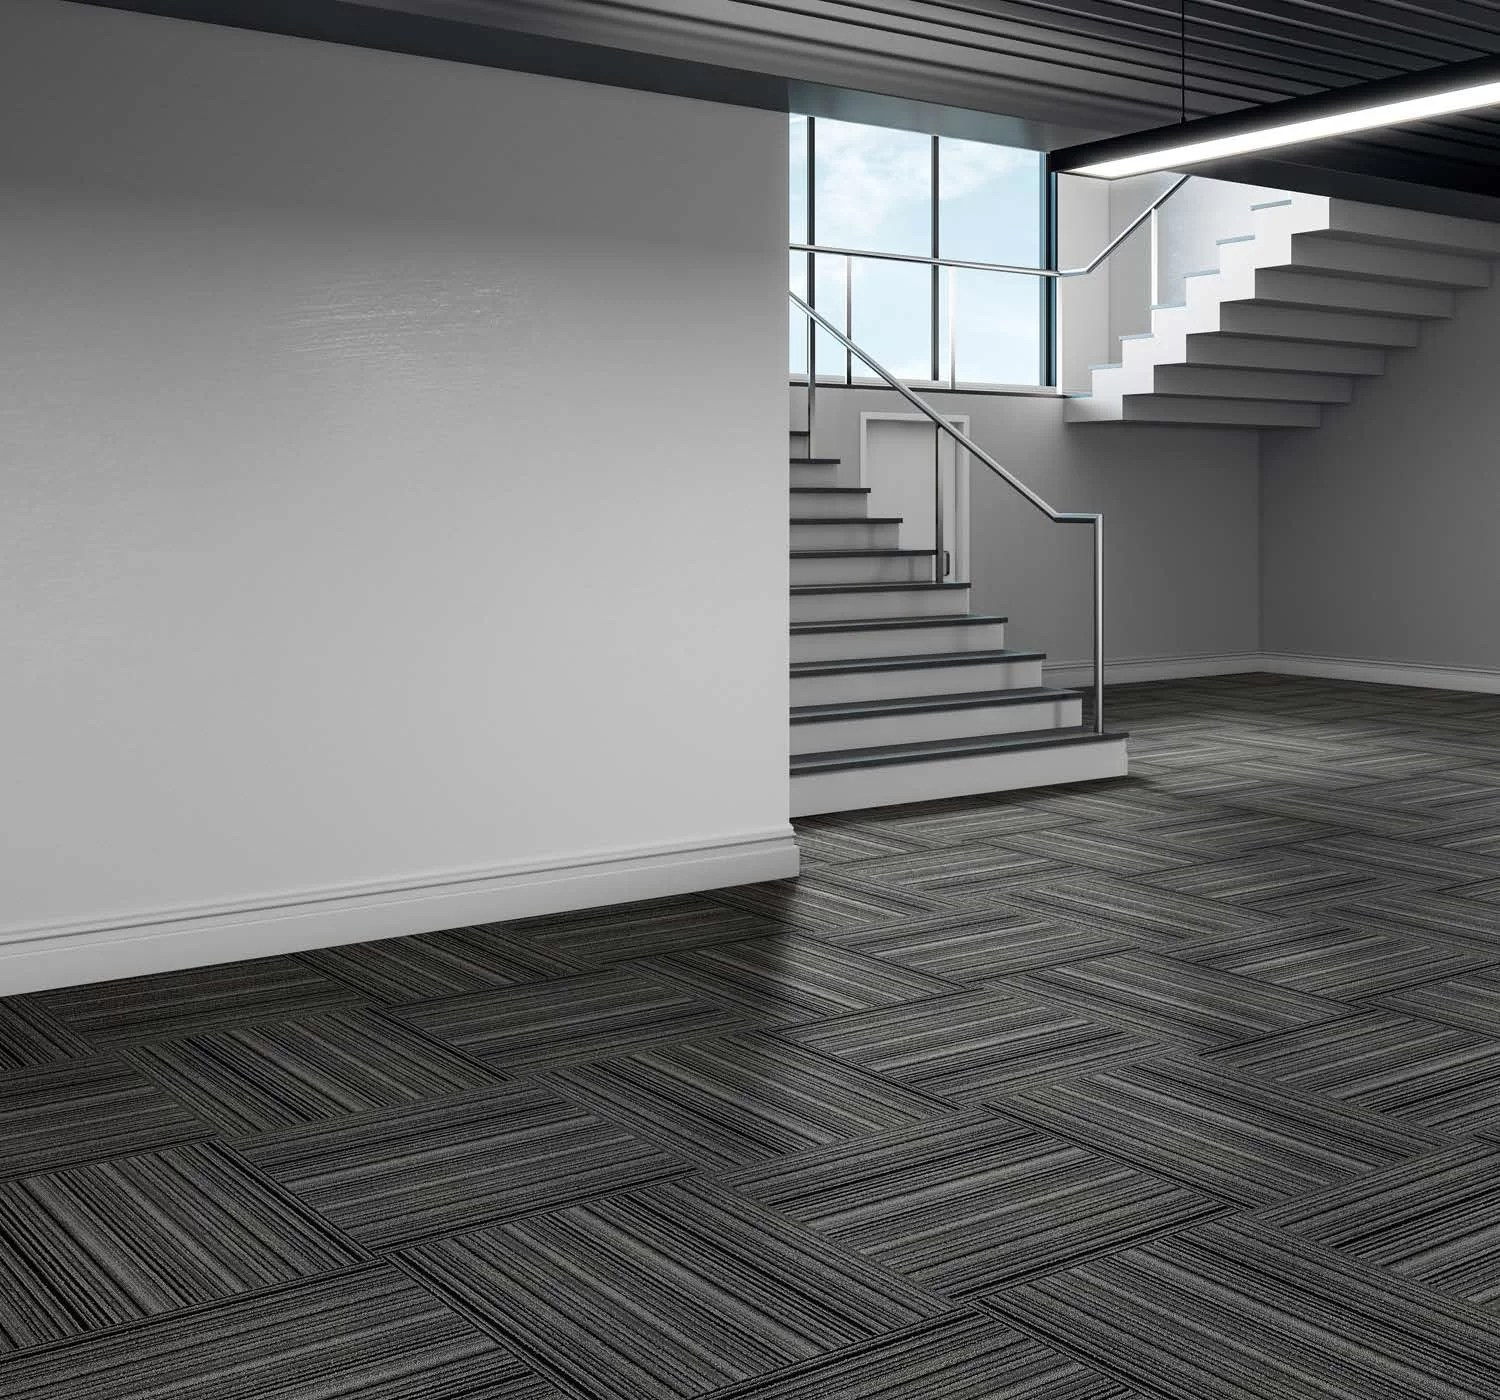 parallels 23 5 x 23 5 level loop peel and stick carpet tile